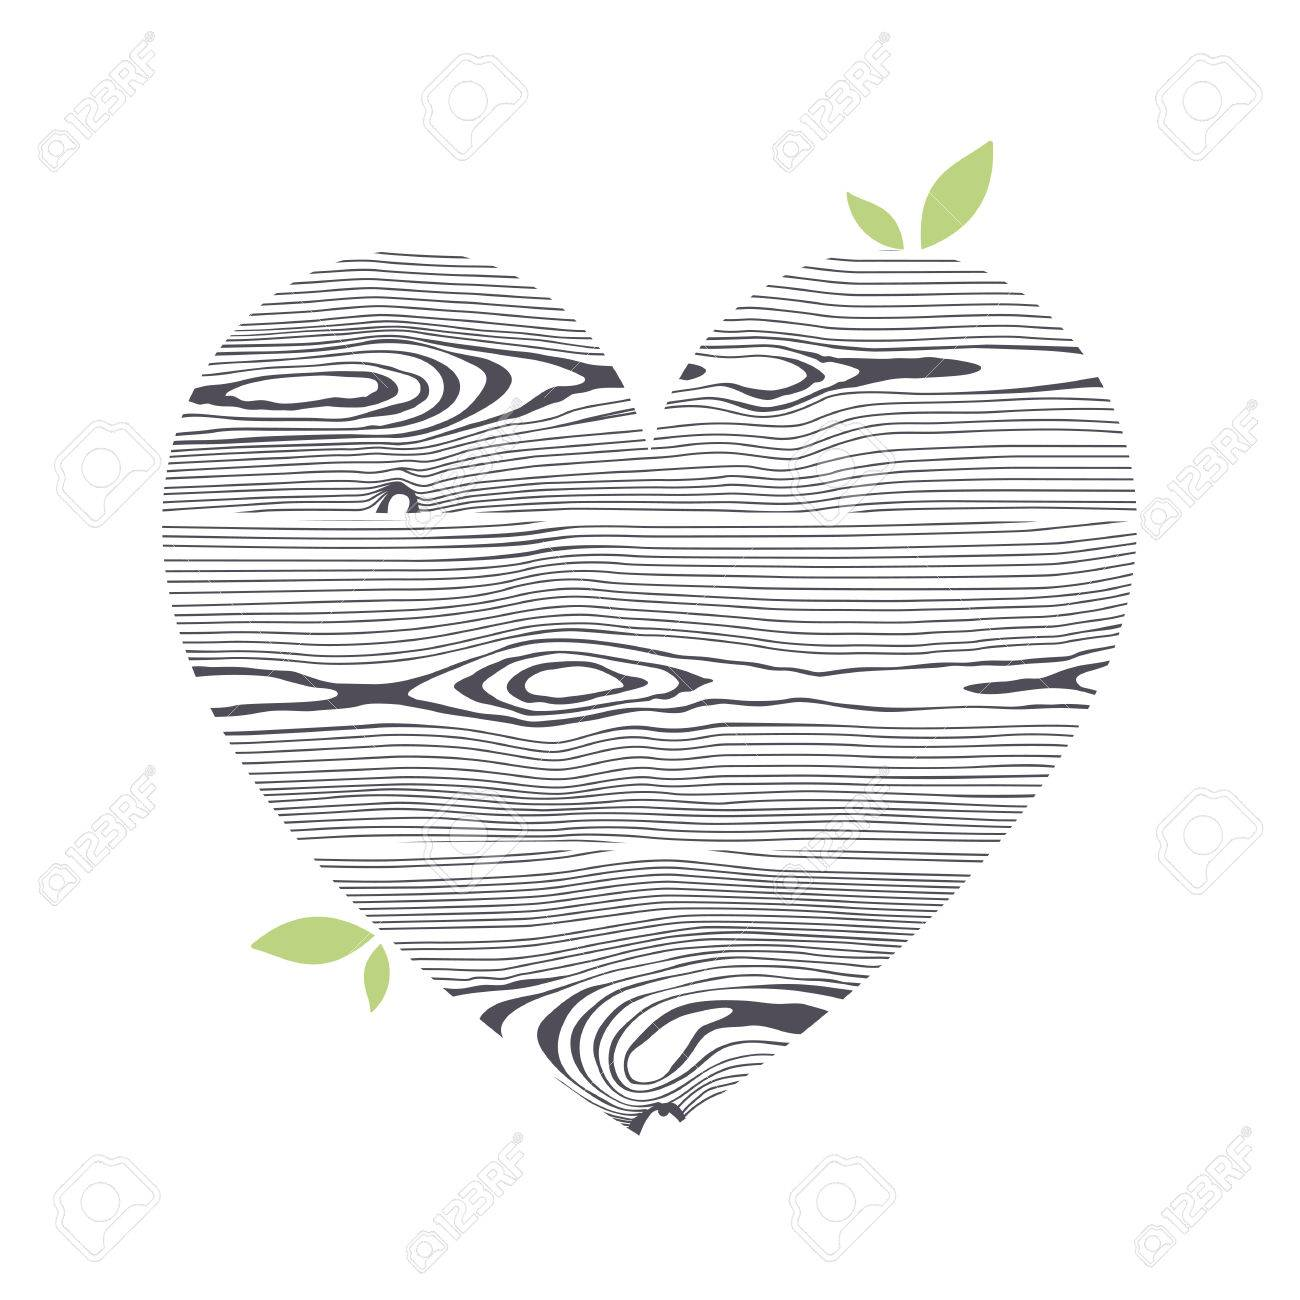 Wooden textured graphic heart. Stylized isolated symbol. - 61772143